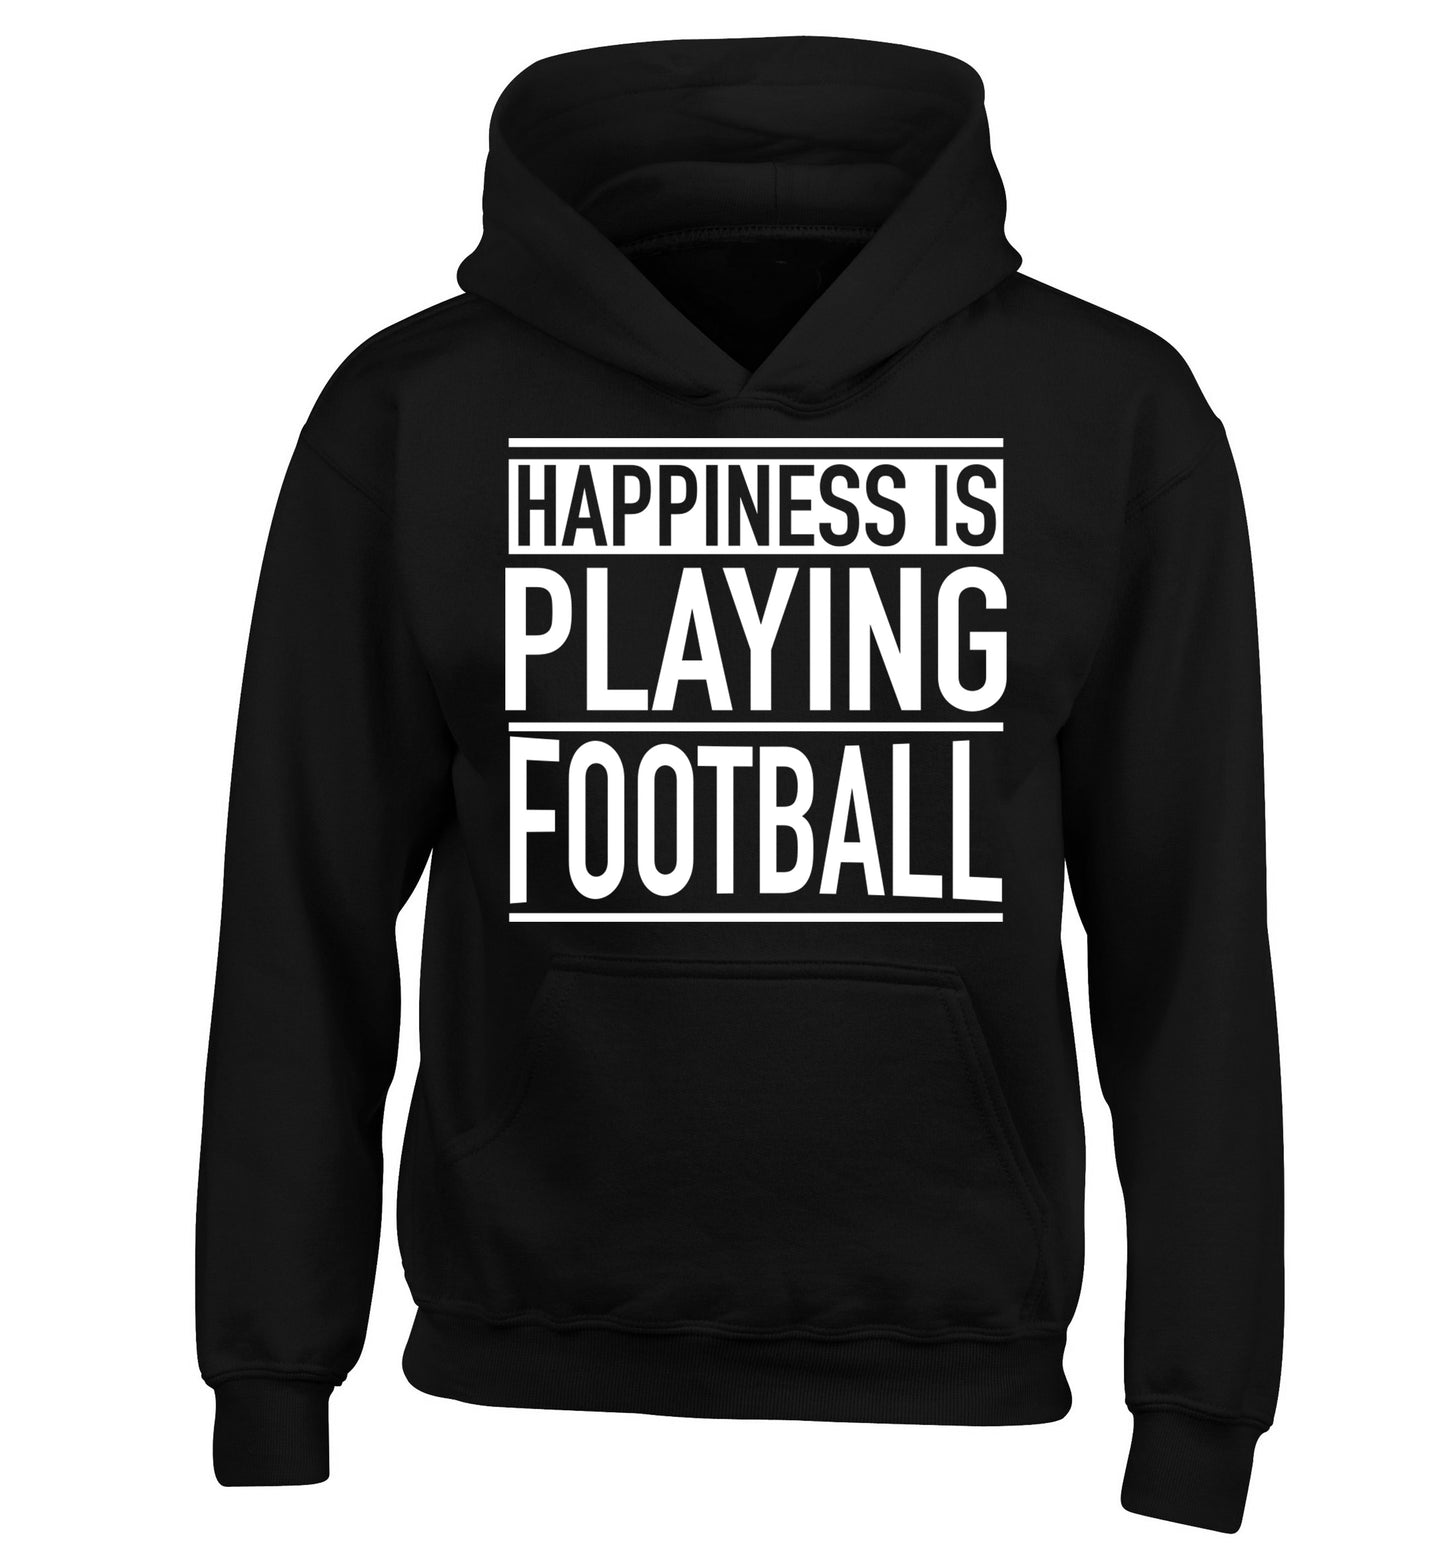 Happiness is playing football children's black hoodie 12-14 Years